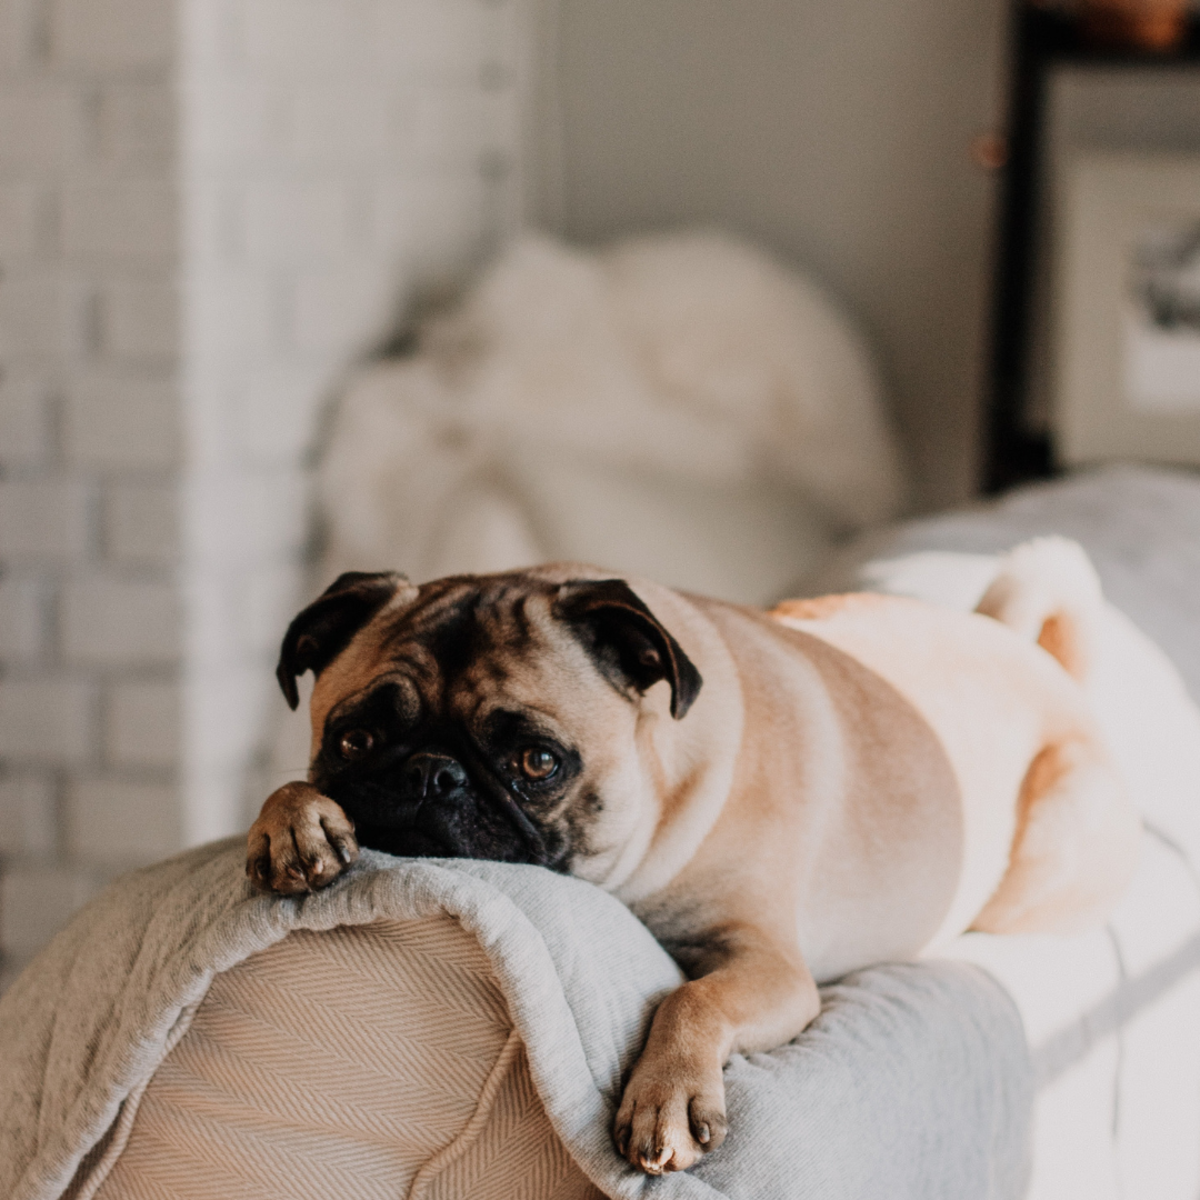 Dogs like the Pug are prone to trauma and often present with red eyes.